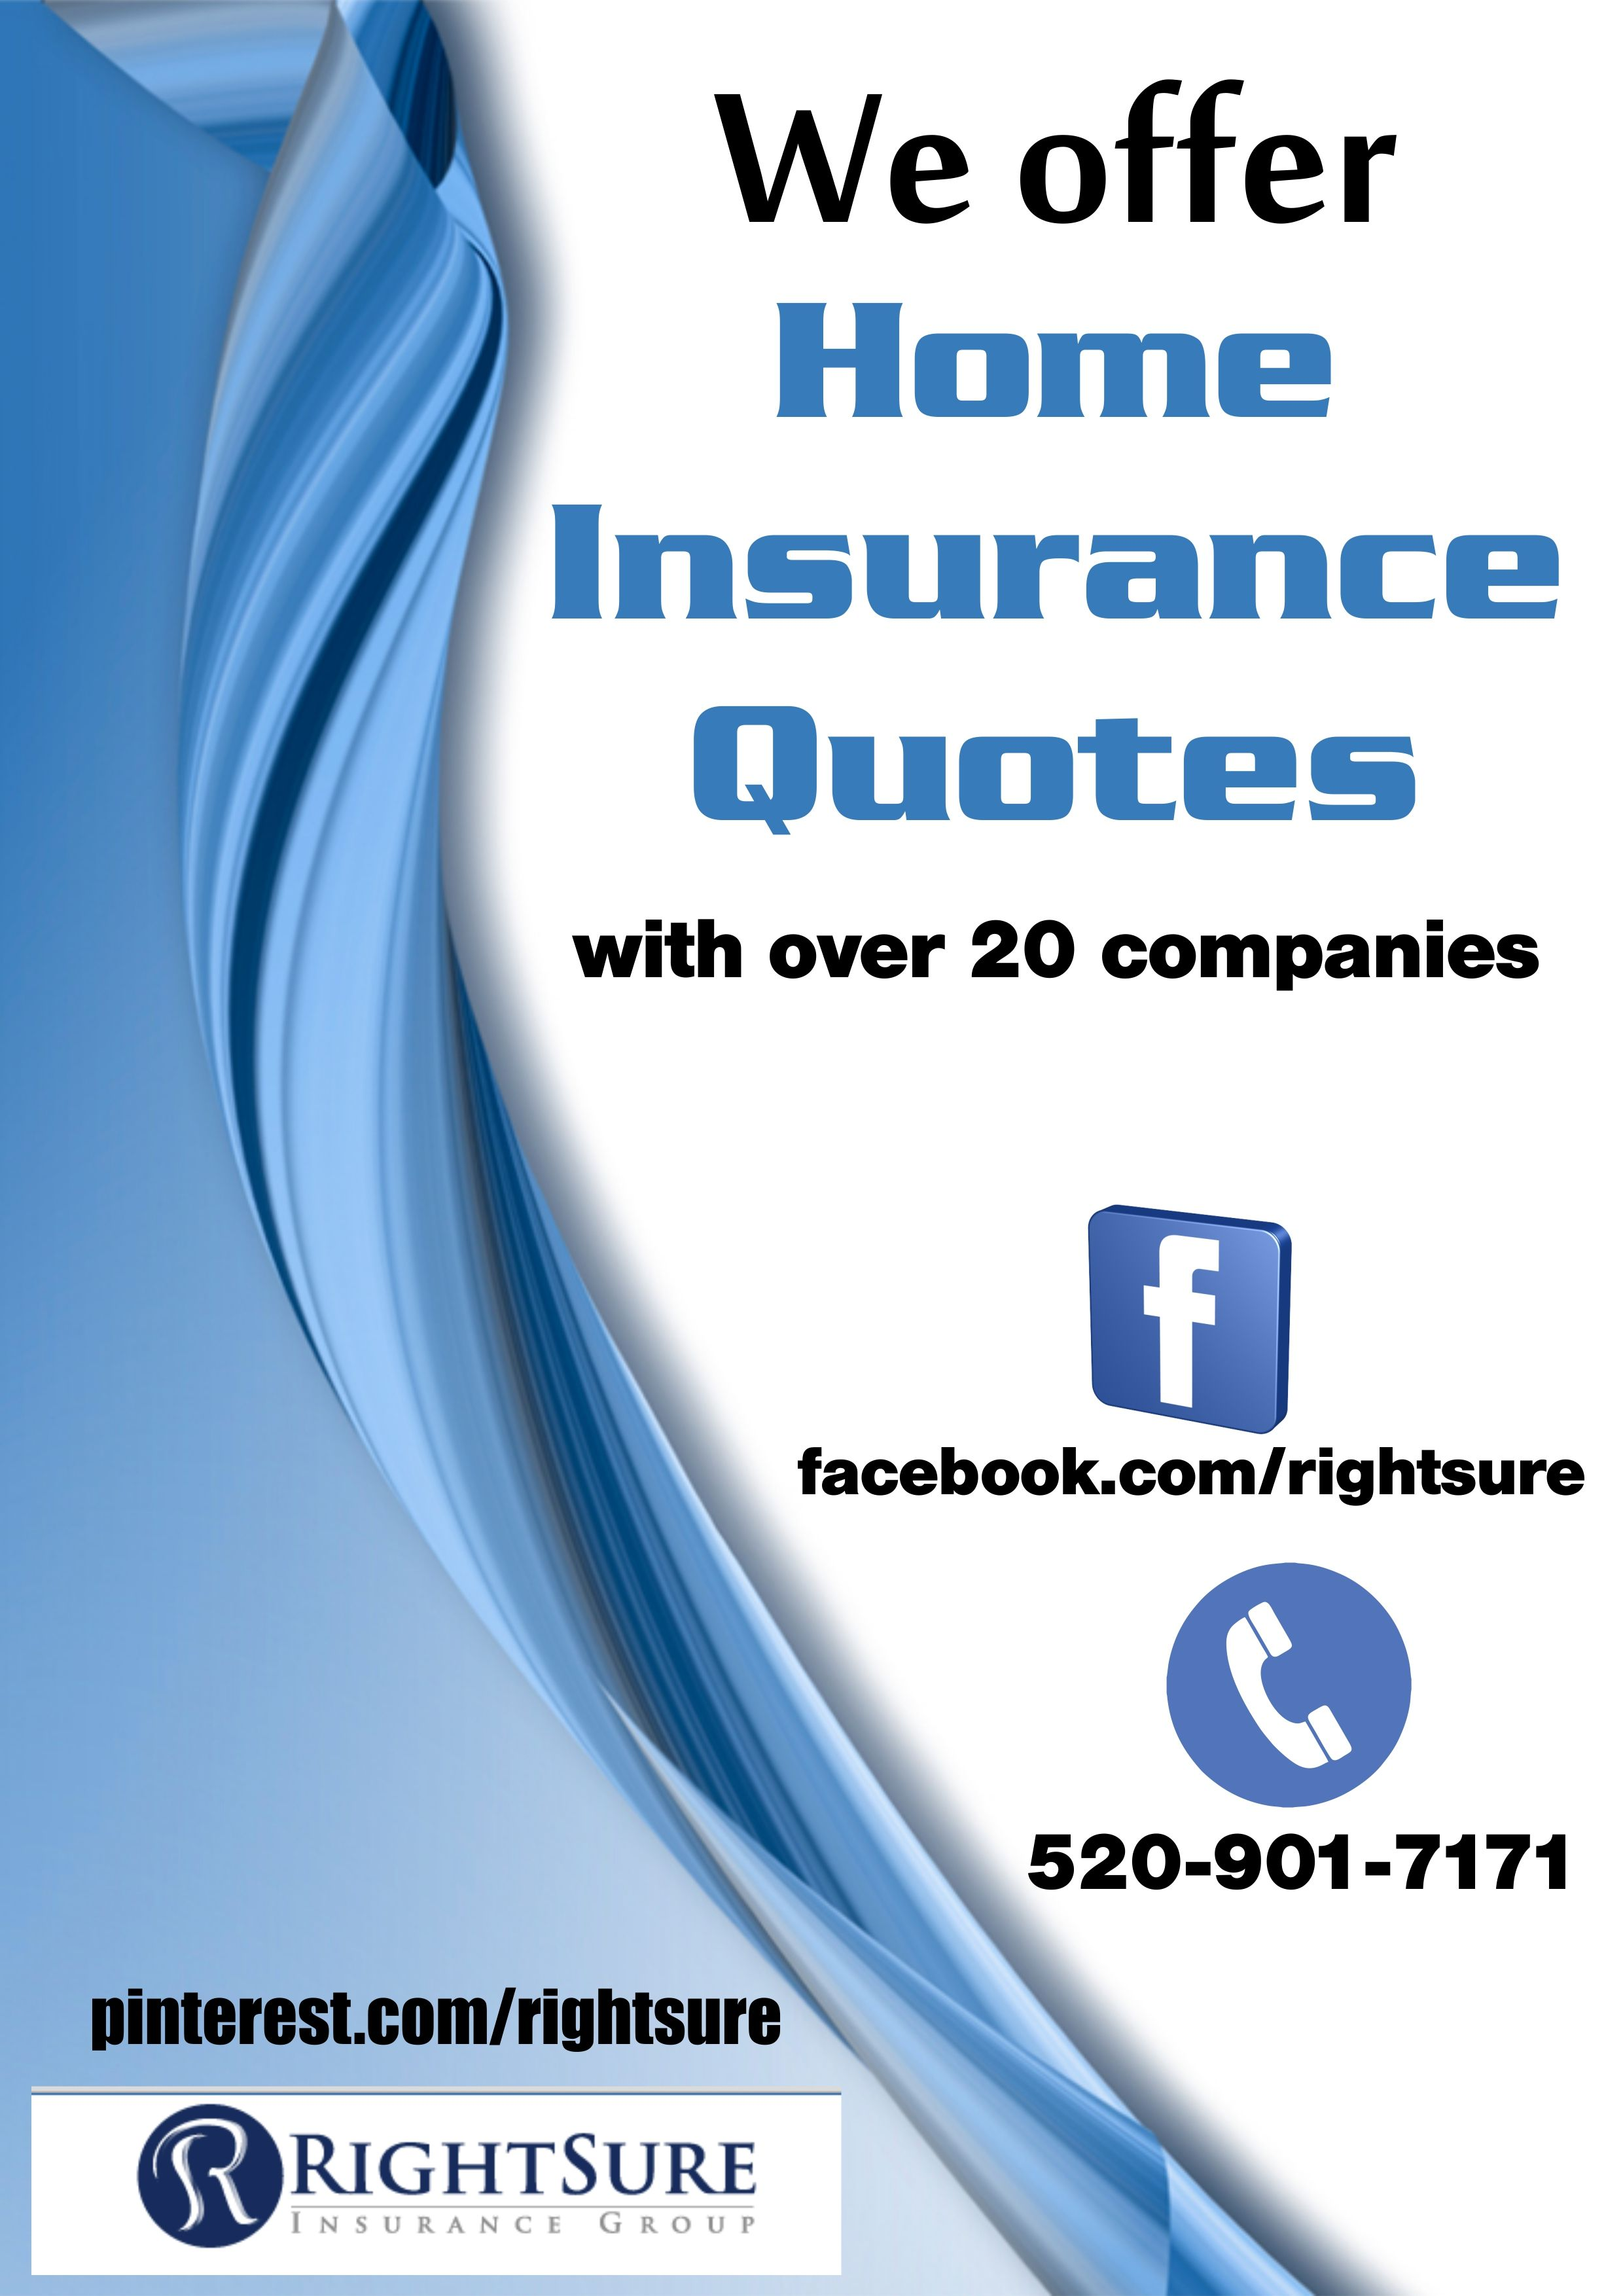 Compare Multiple Insurance Companies For Home Insurance 520 901